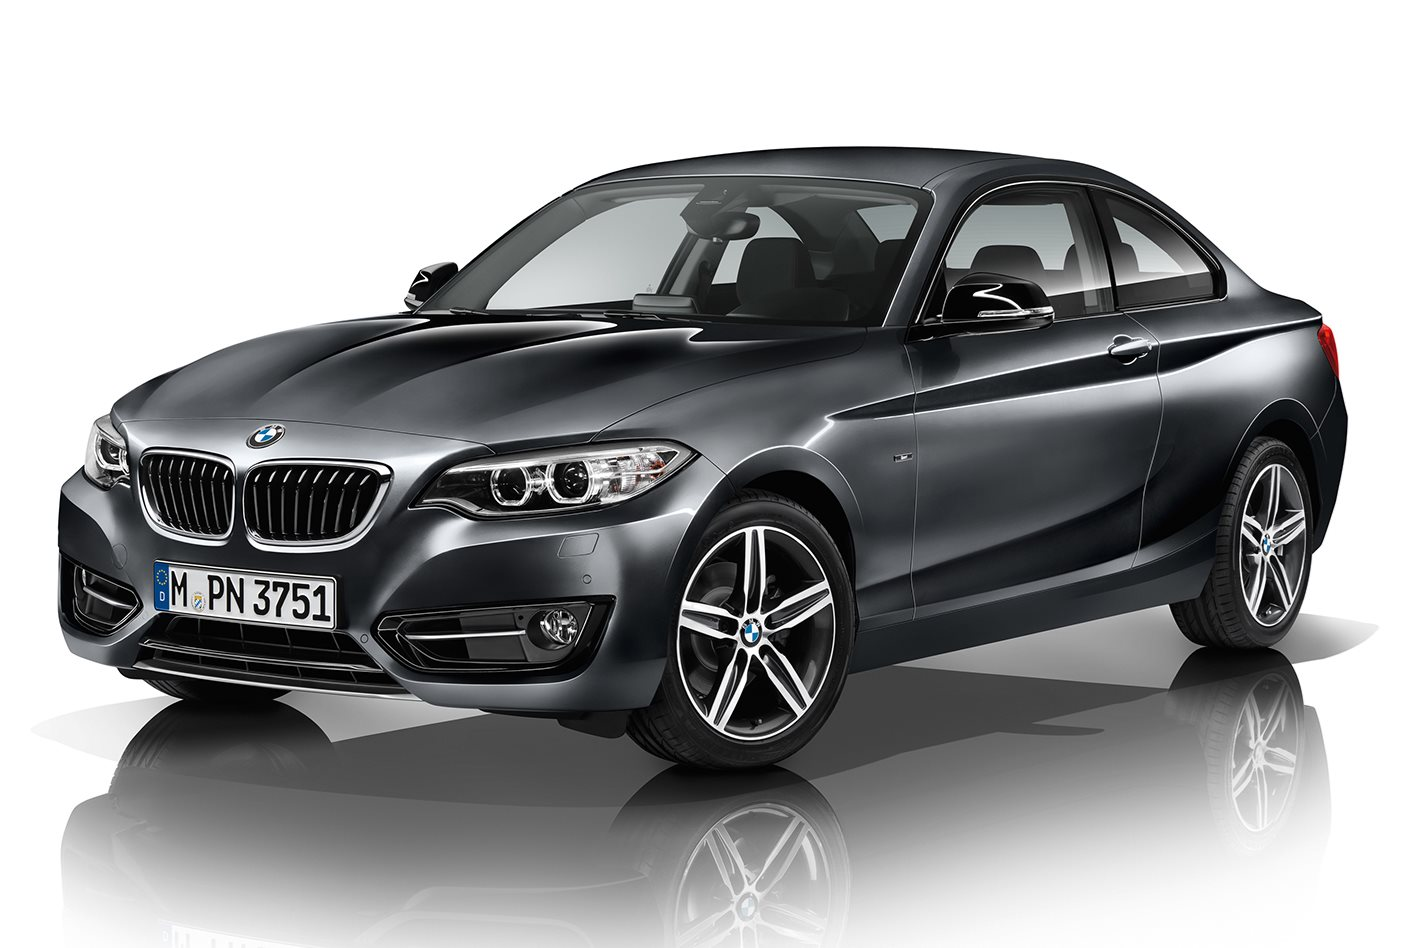 2017 BMW 2 Series Range Announced Updated Engines Increased Prices